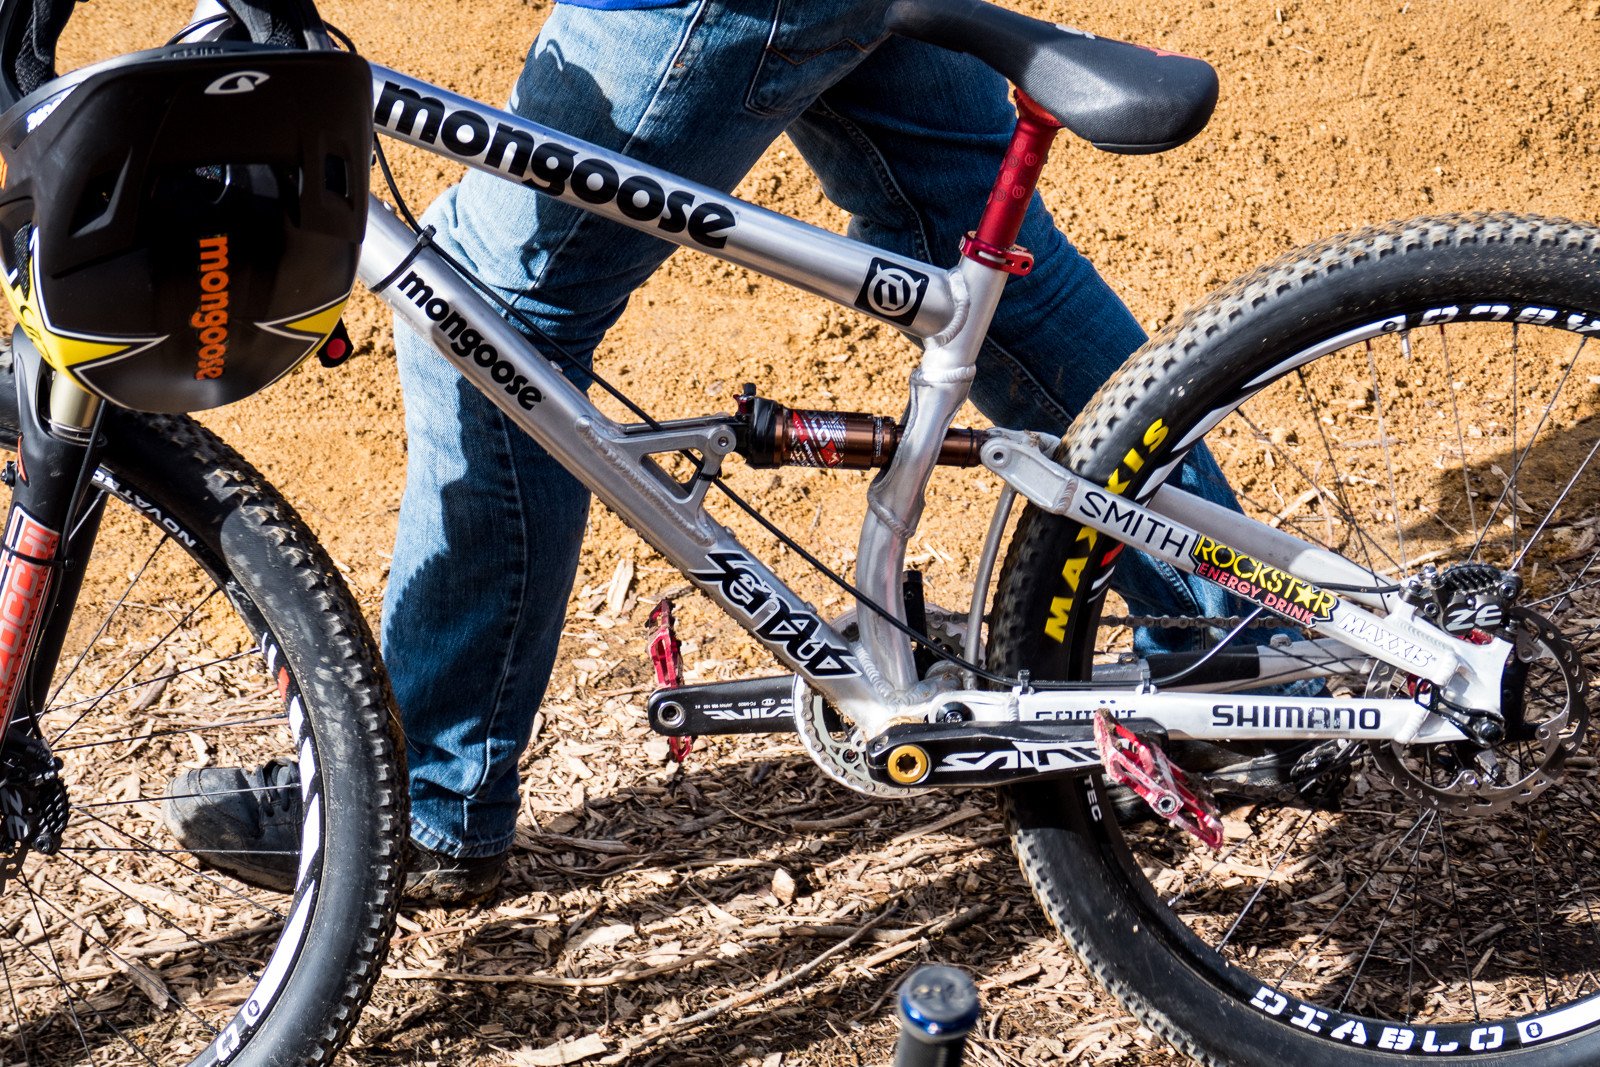 Greg Watts' Prototype Mongoose Slopestyle Bike - PIT BITS - Crankworx Rotorua - Mountain Biking Pictures - Vital MTB